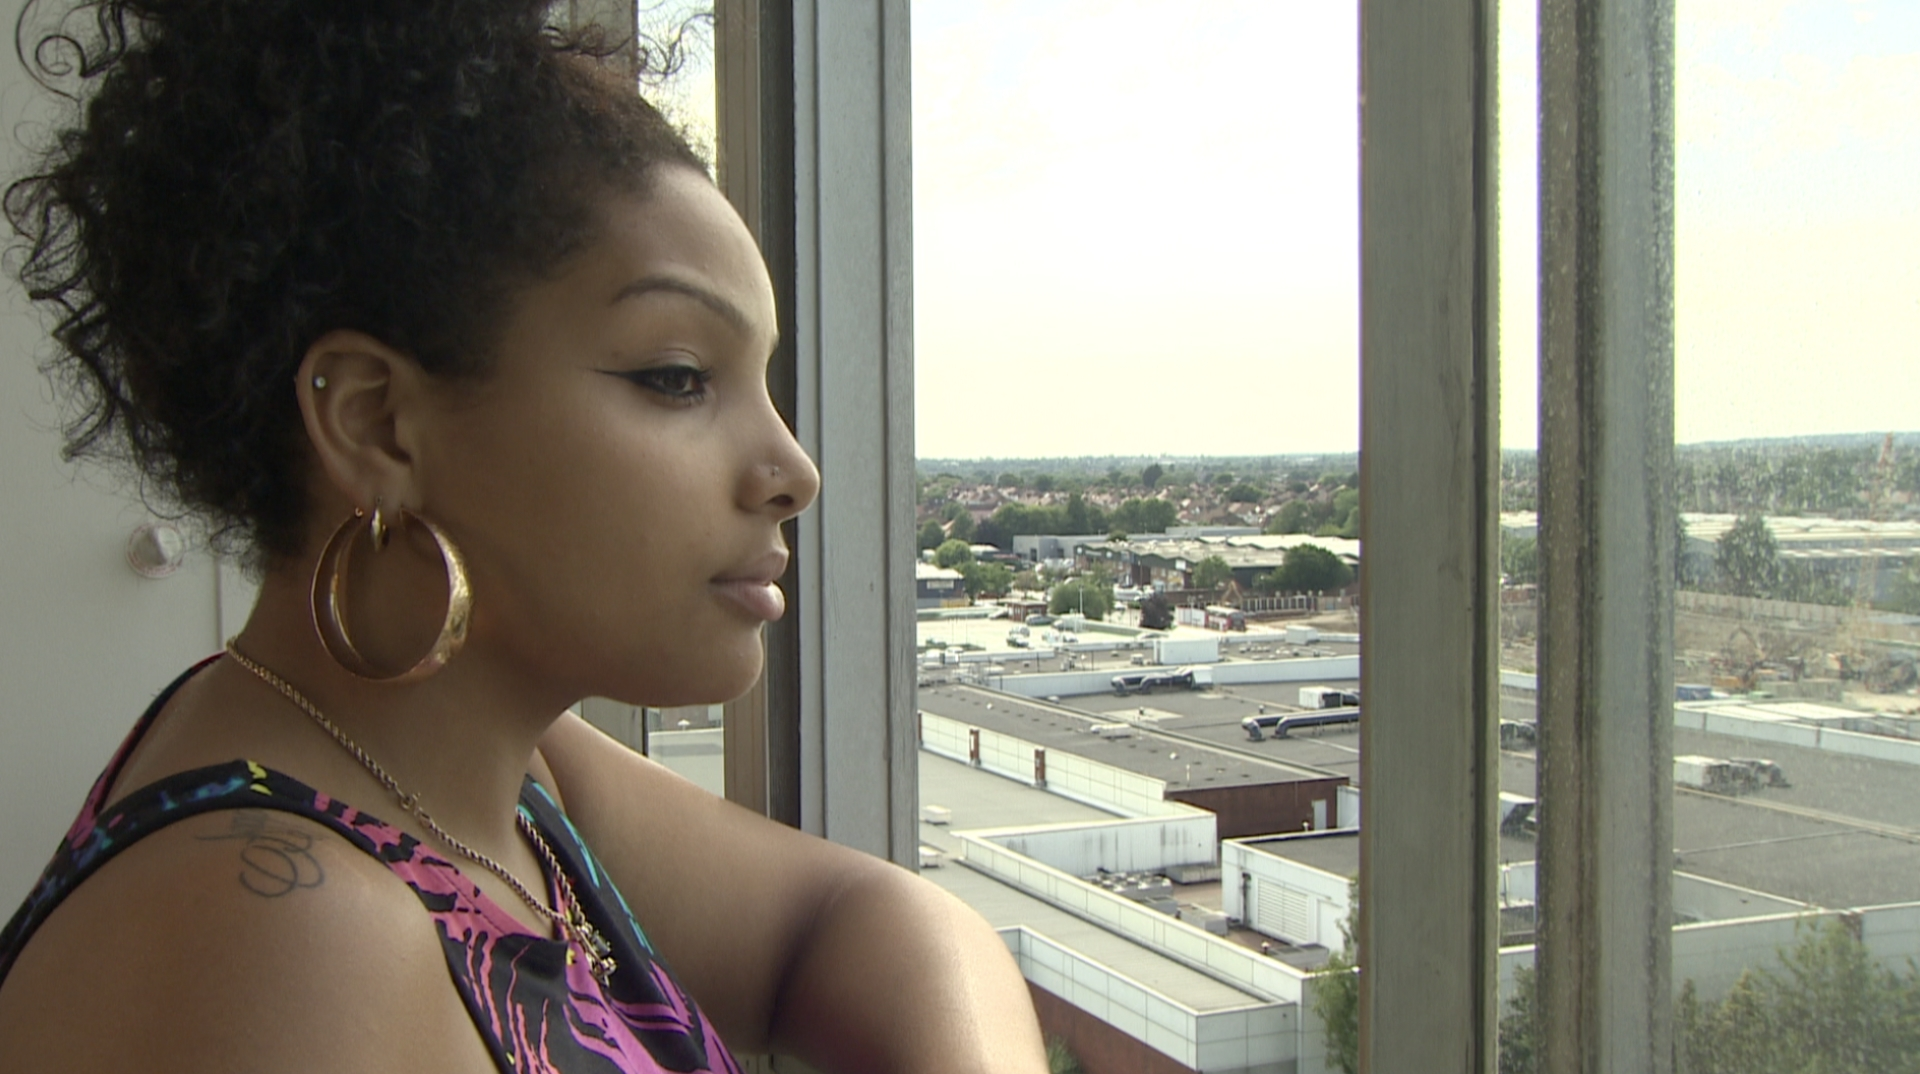 Temi Mwale's movie entitled 'The Struggle' will be premiered at the North Finchley Artsdepot